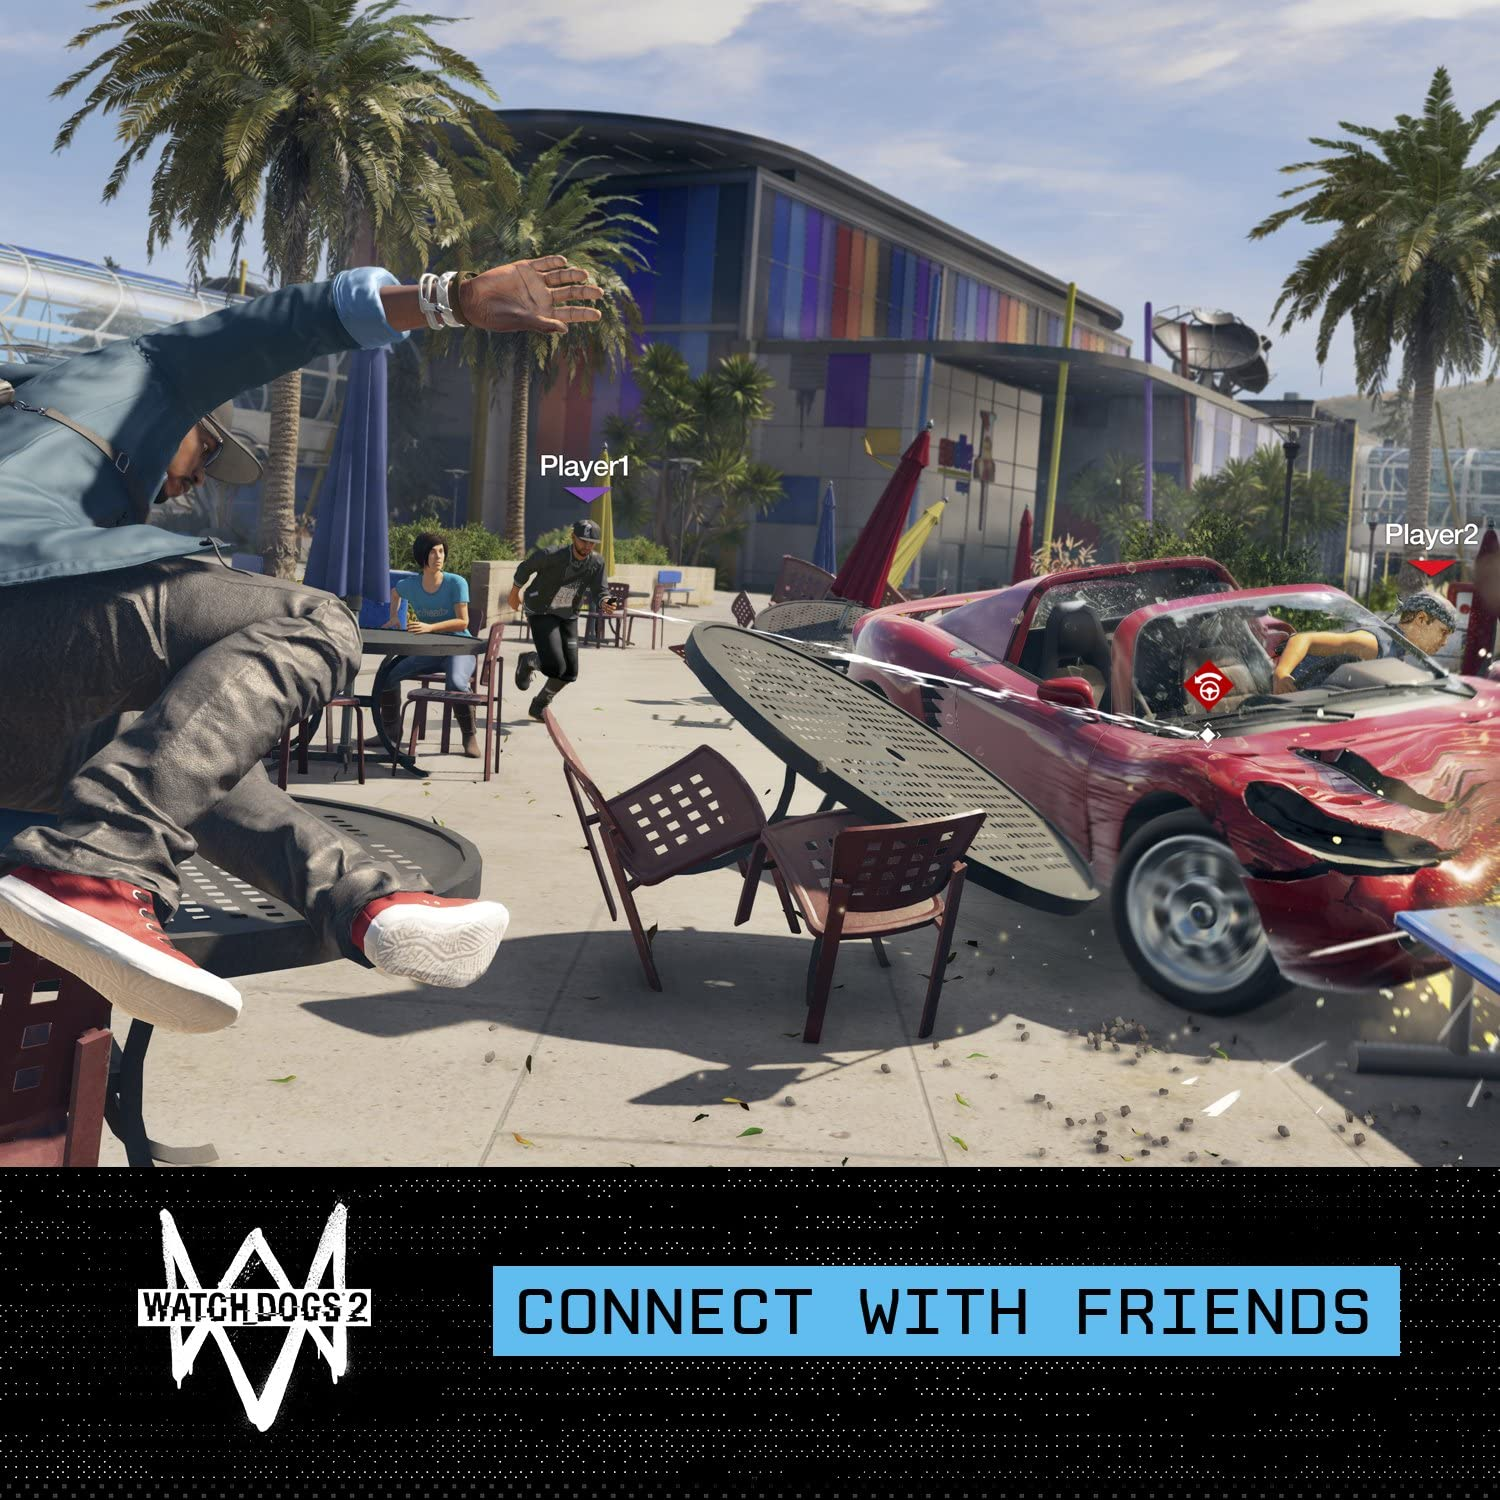 download watch dogs 2 pc completo crackeado